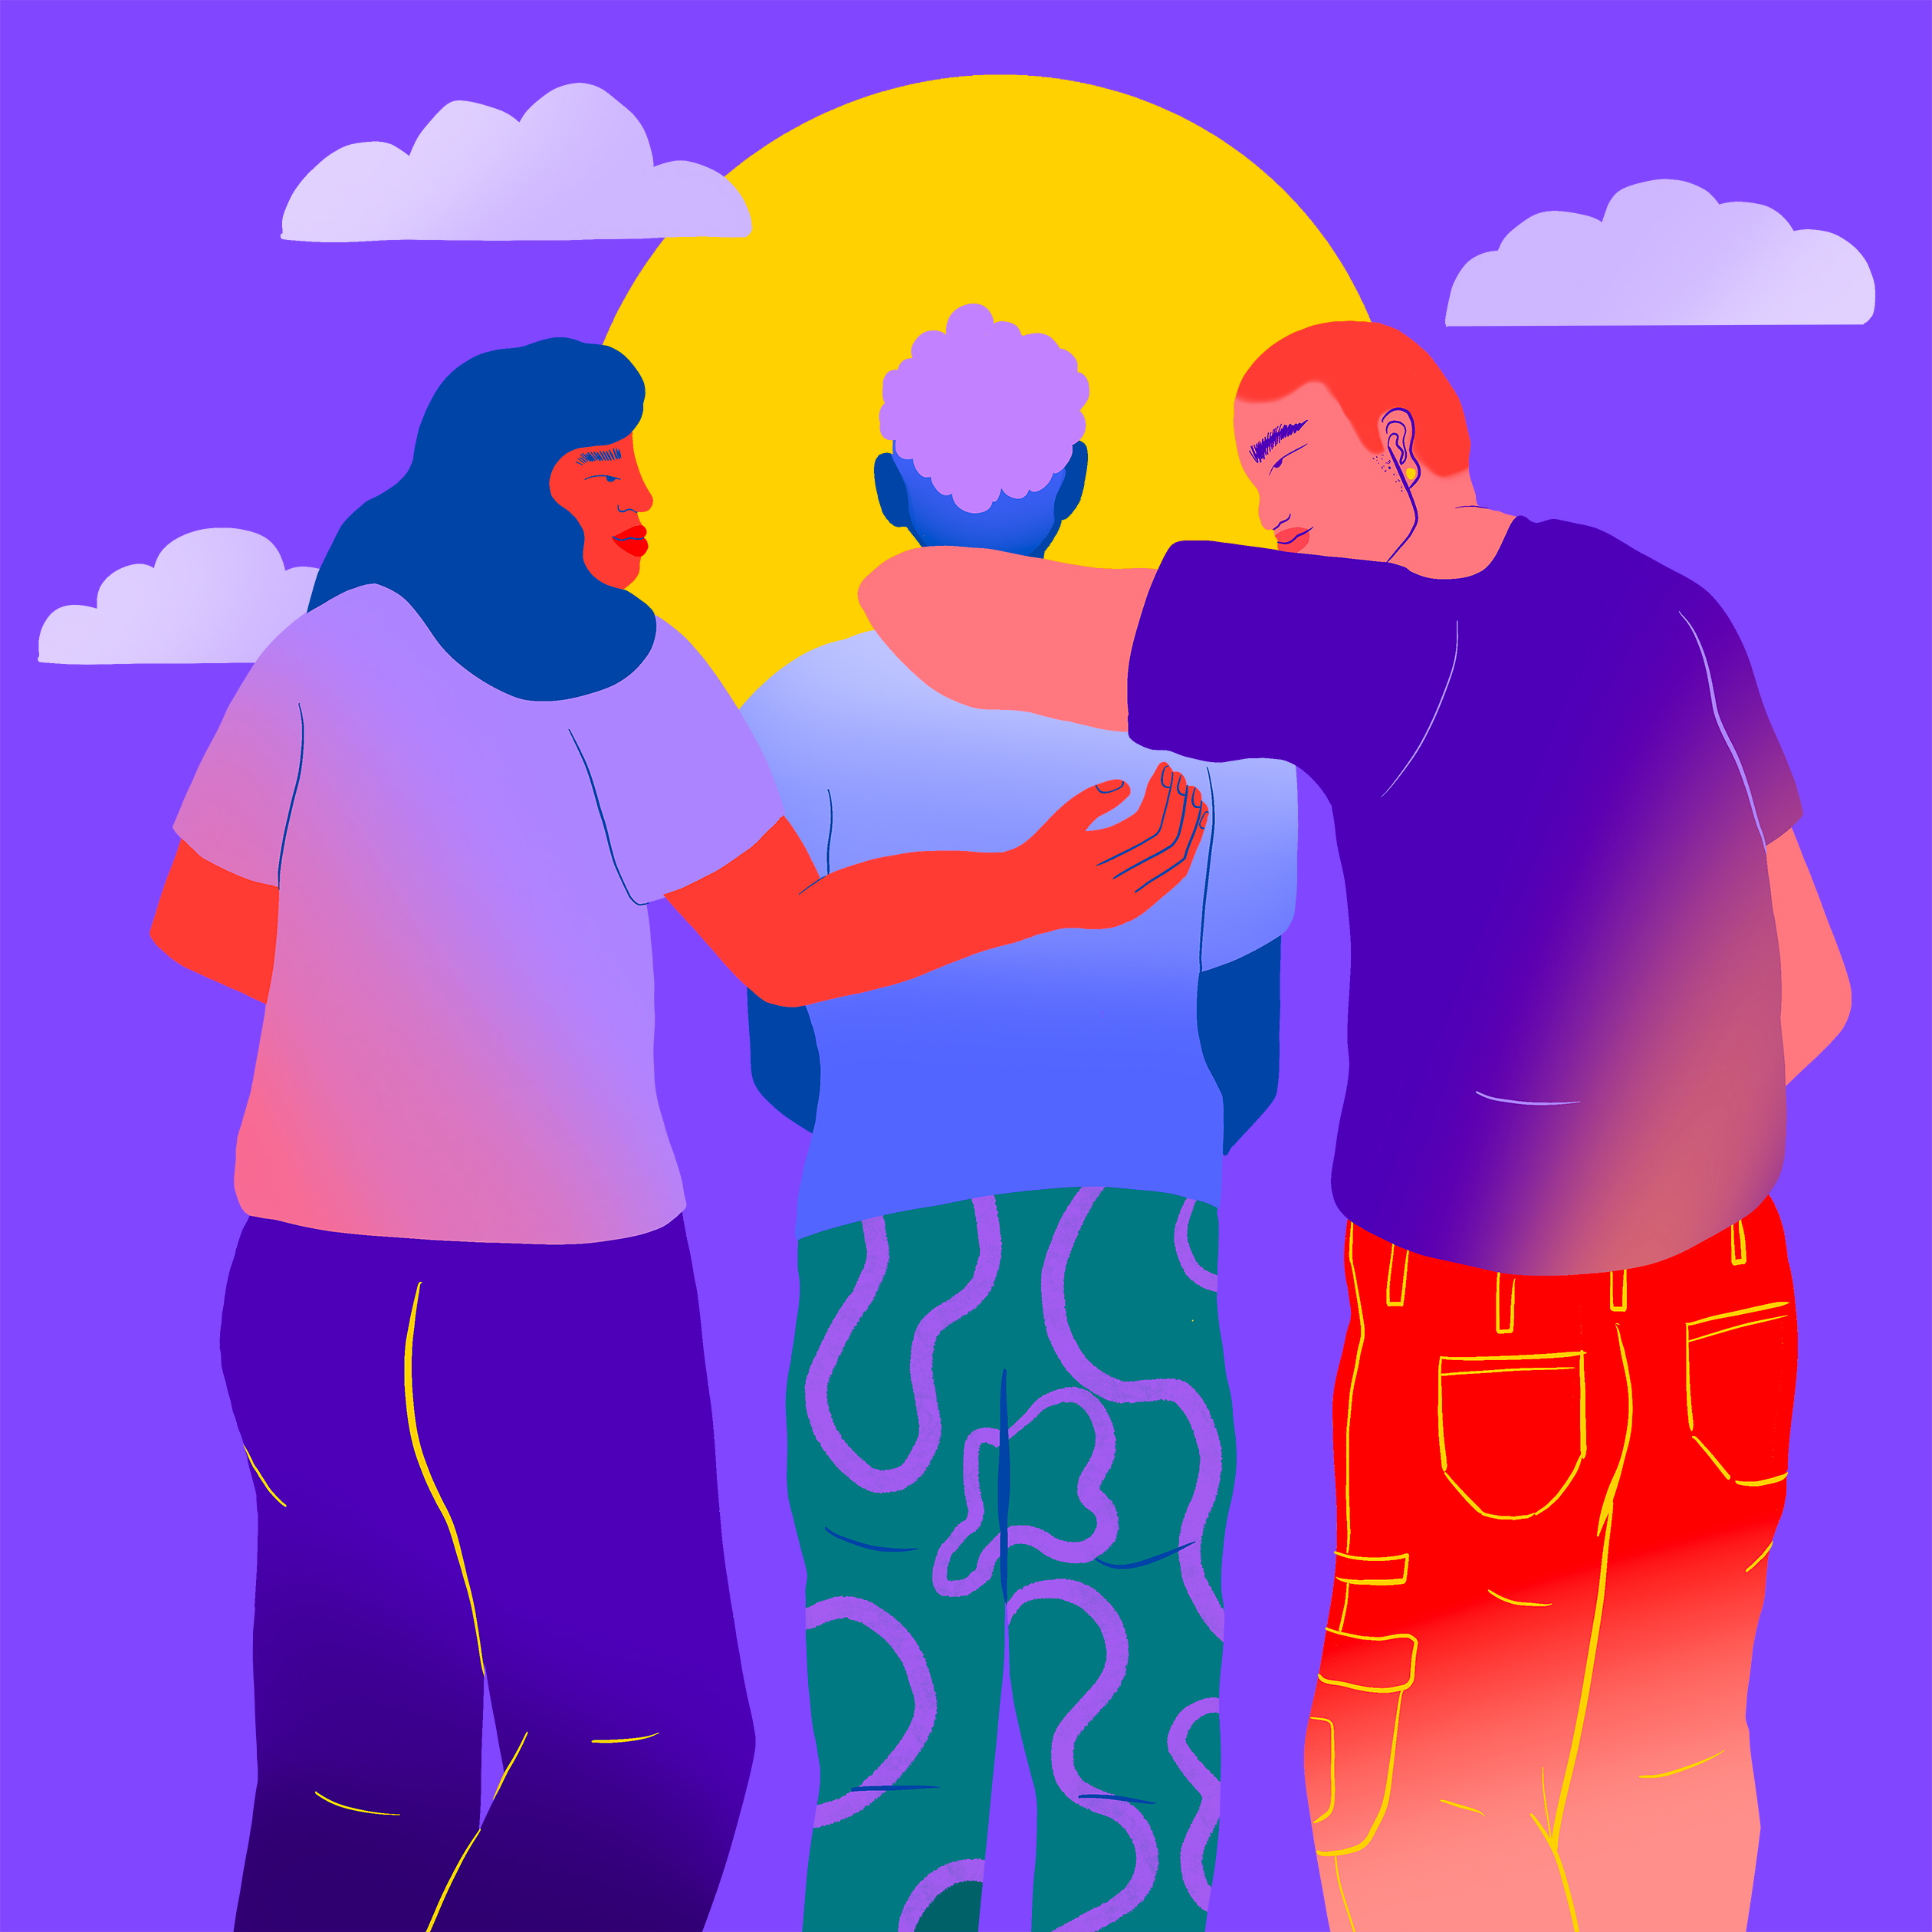 Illustration of three people standing together, two with their arms around person in the middle, smiling at them